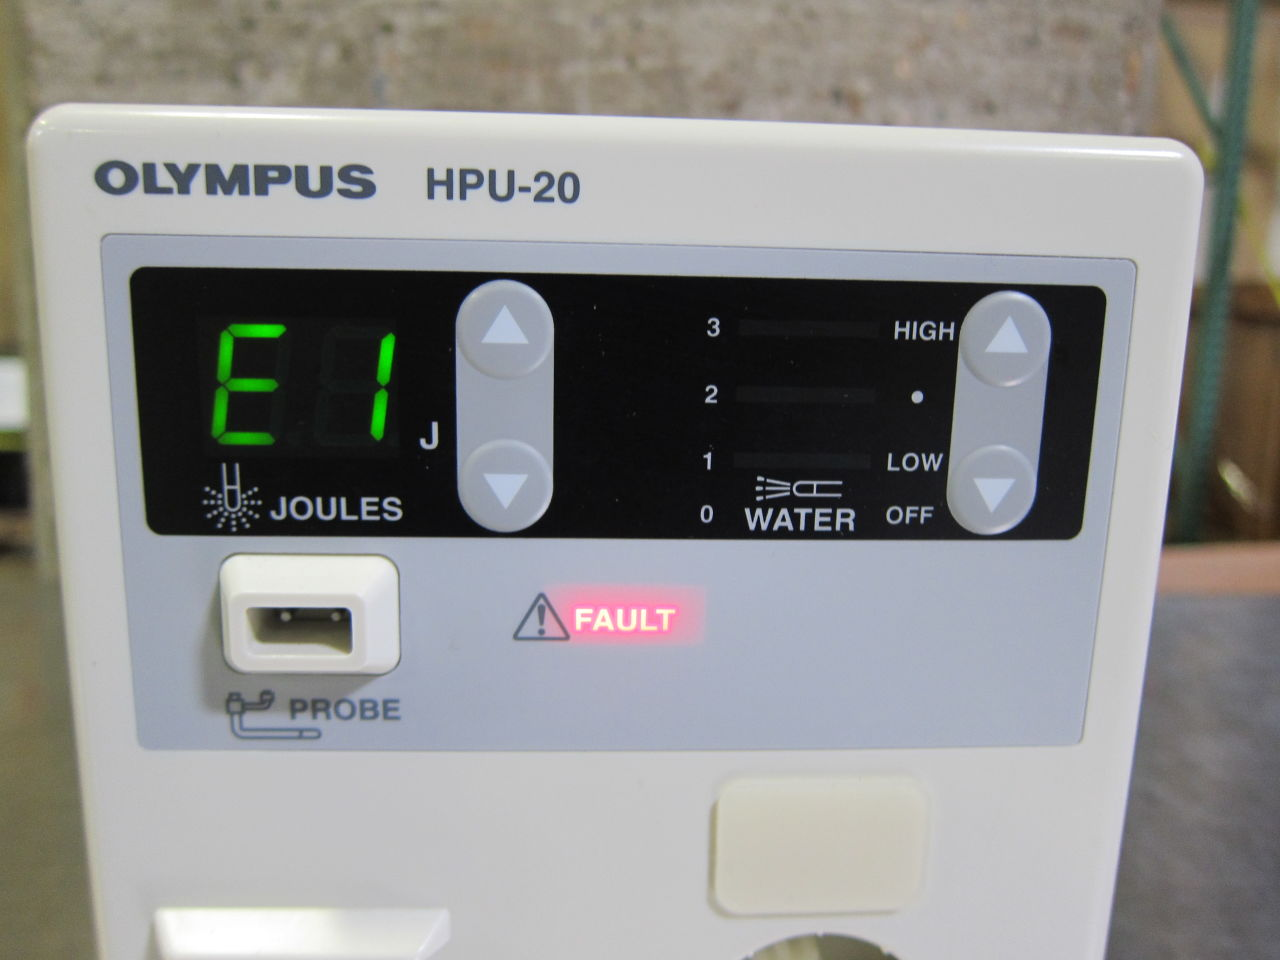 OLYMPUS HPU-20 Heat Therapy Unit